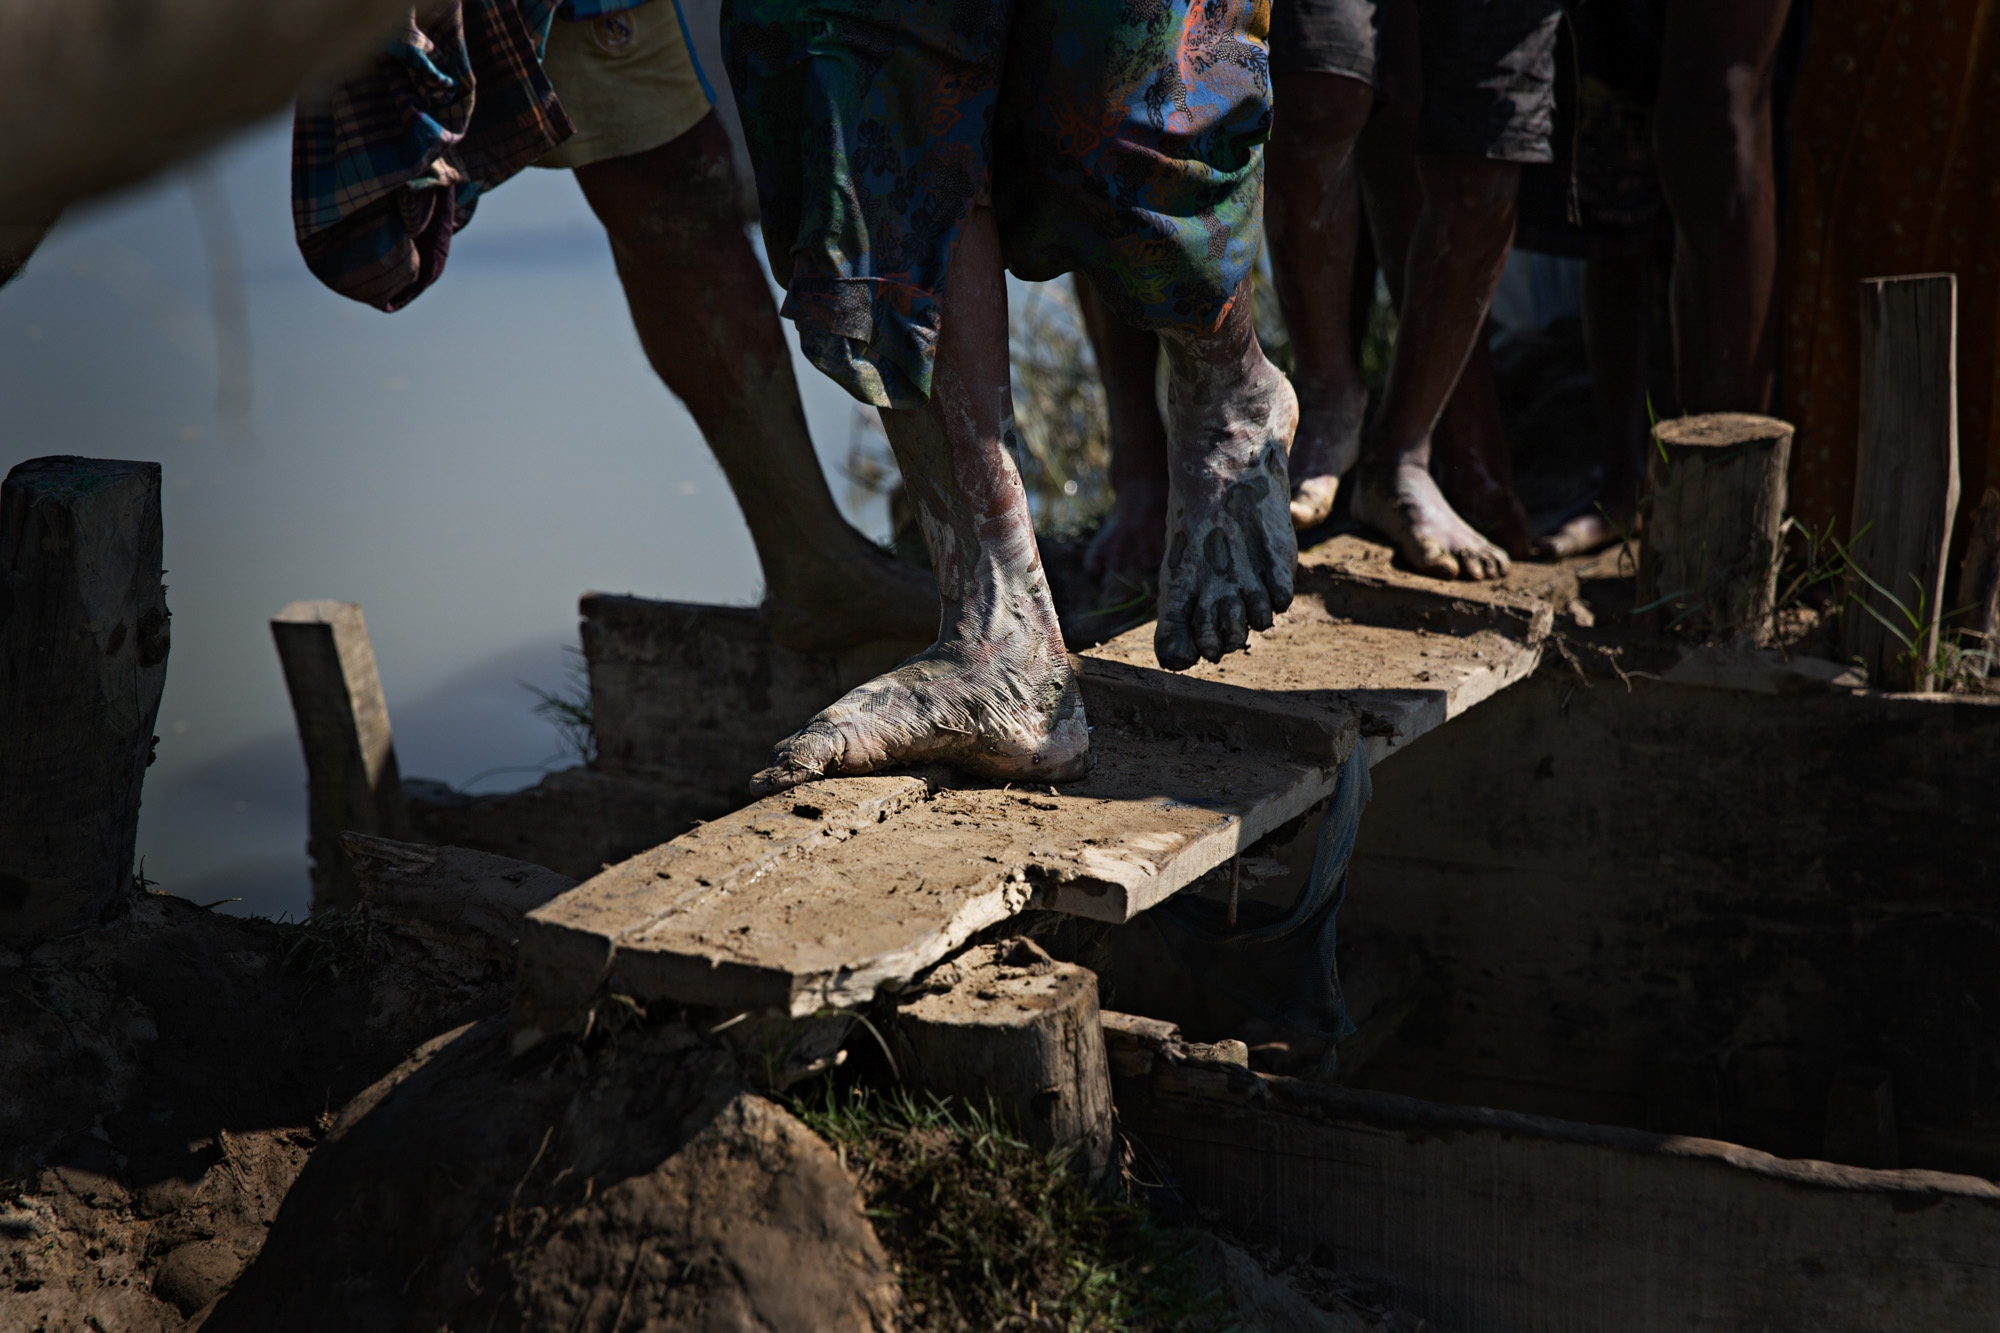 The feet of Rohingya refugees are pictured crossing a narrow plank in a rice paddy field on the Bangladeshi side of the Naf River. Tens of thousands of Rohingya were forced to move single file, due to the nature of the rice paddy walkways.